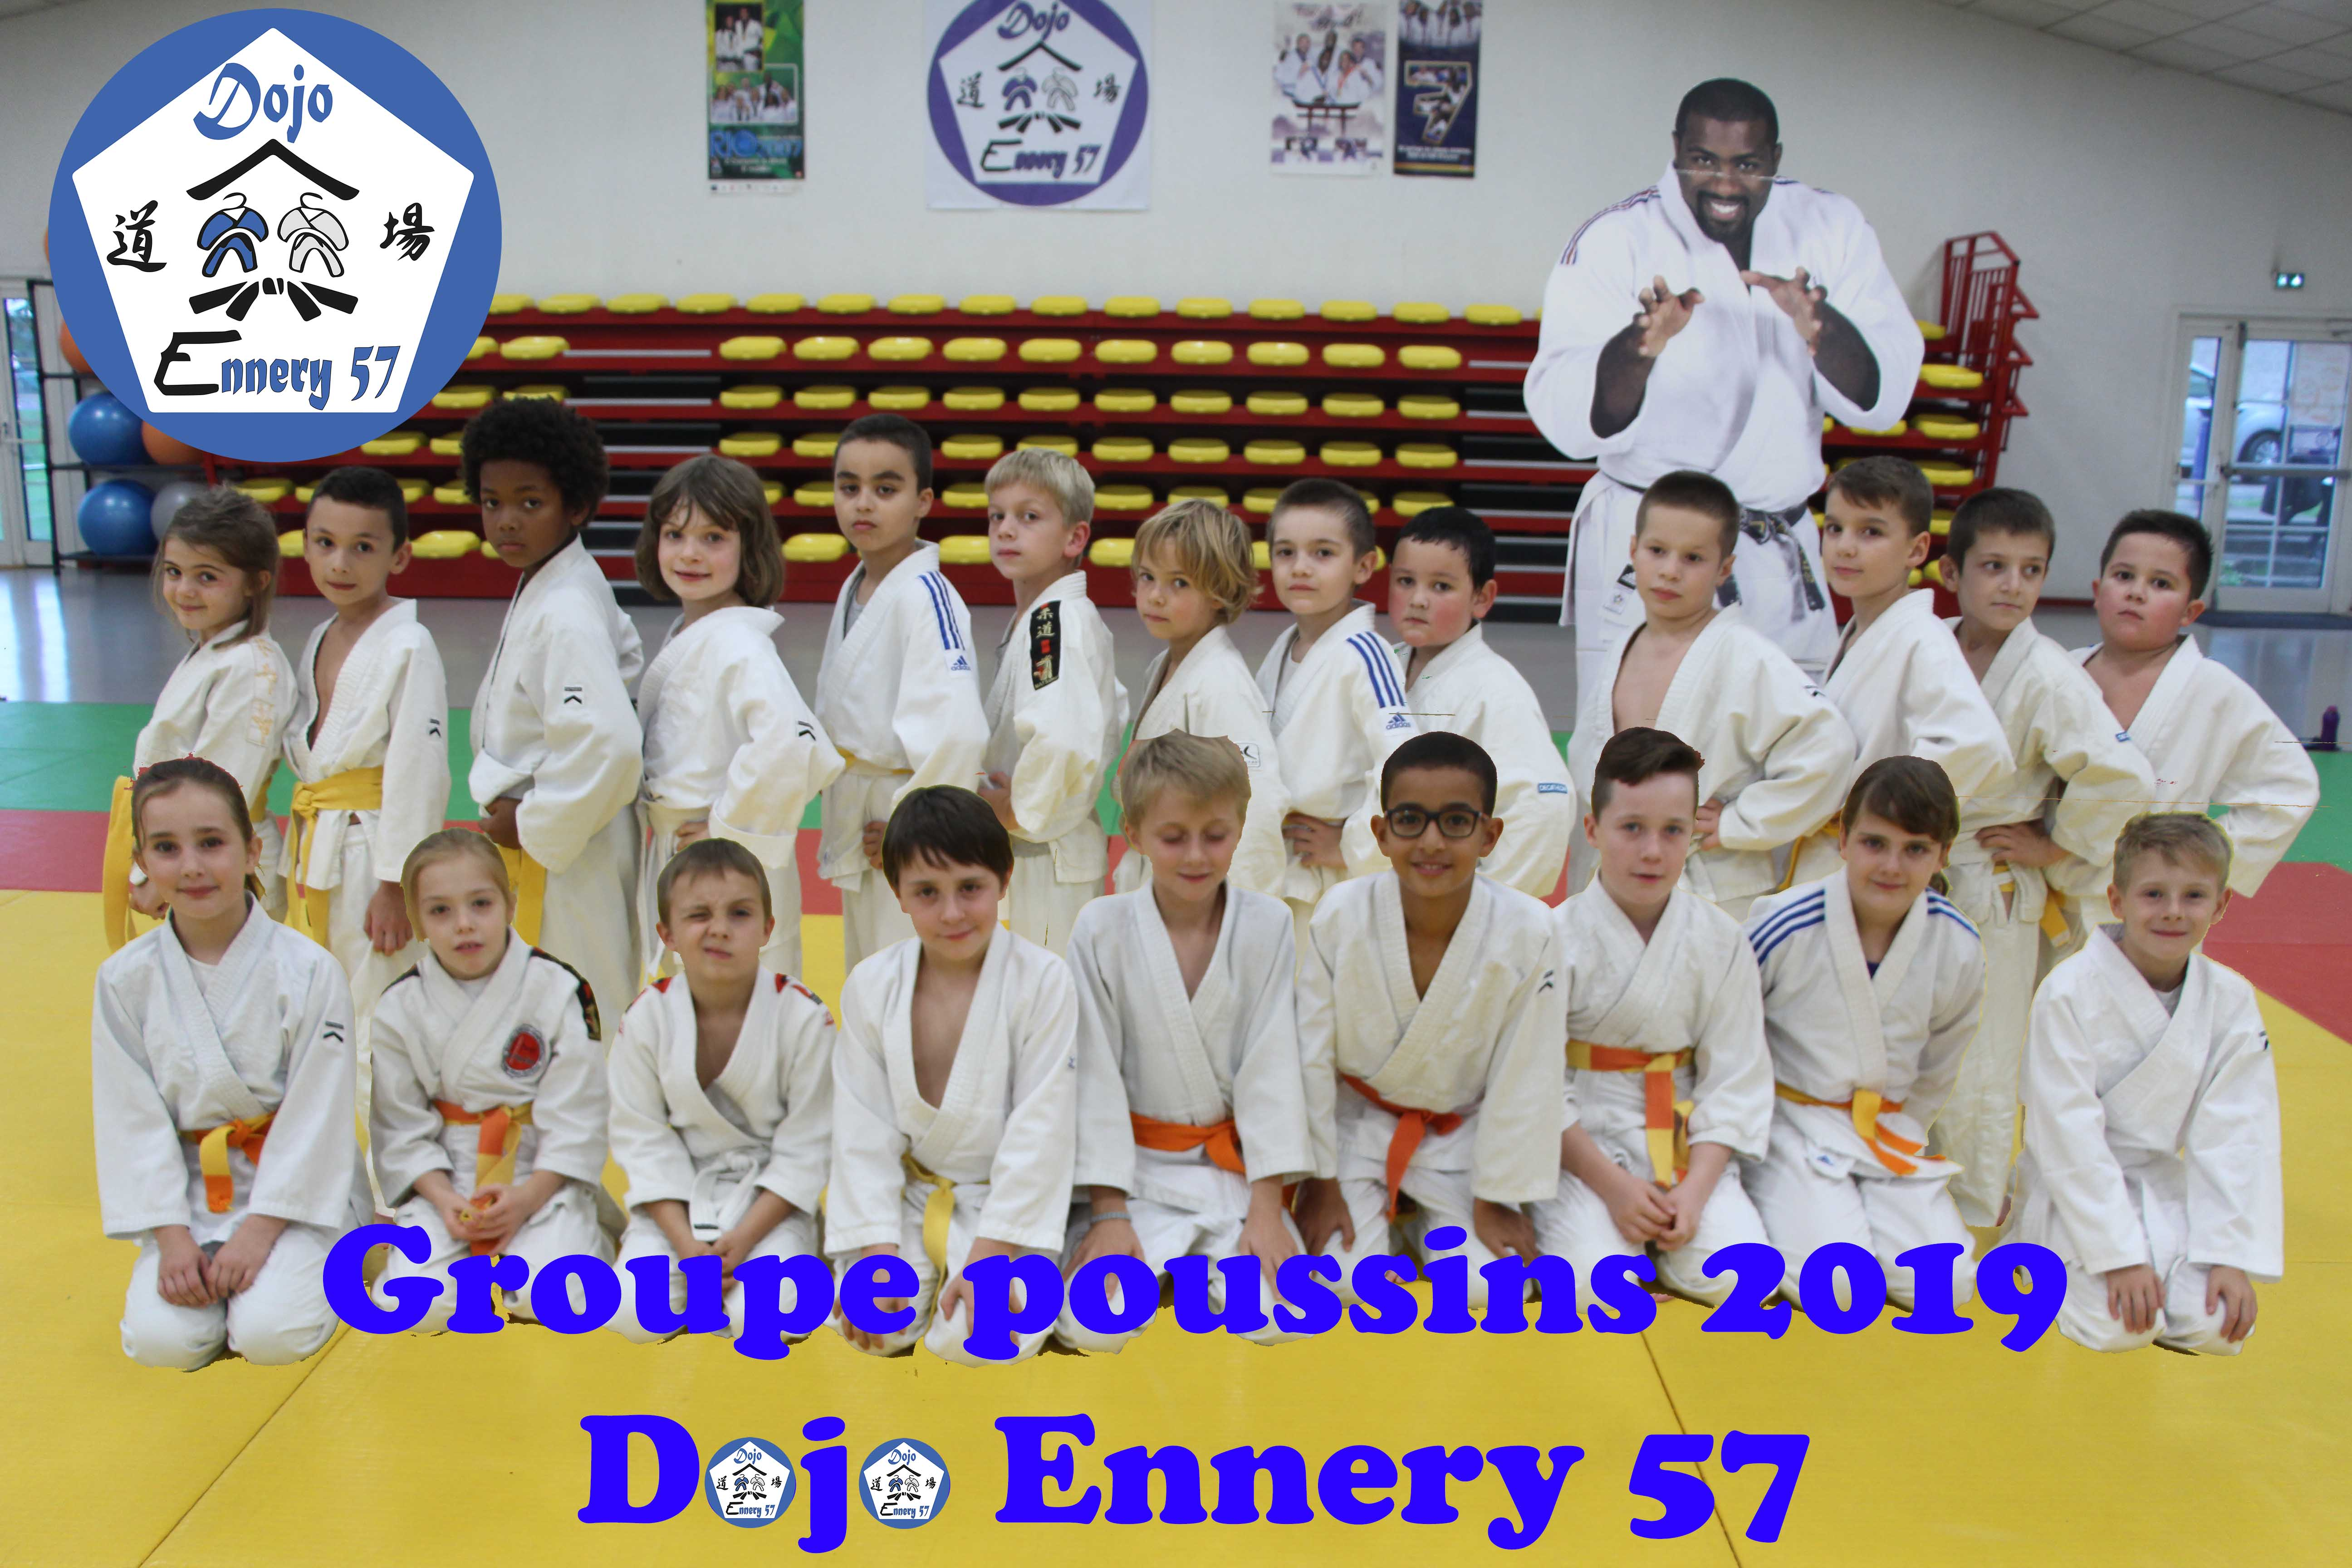 Dojo ennery 57 groupe POUSSINS 2019